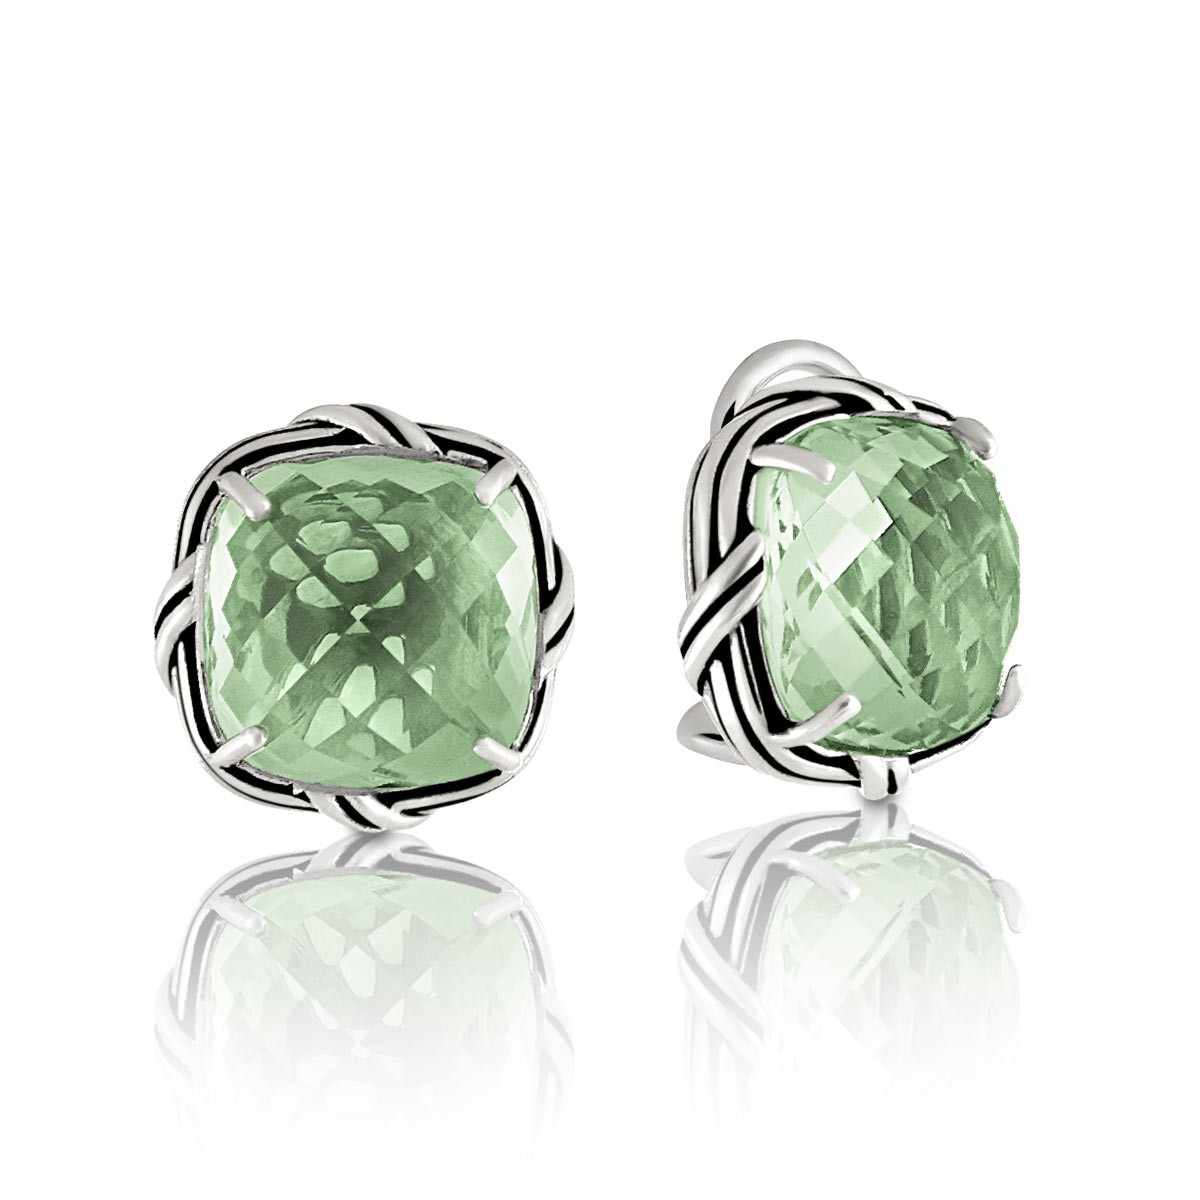 Fantasies Prasiolite Omega Back Earrings in sterling silver